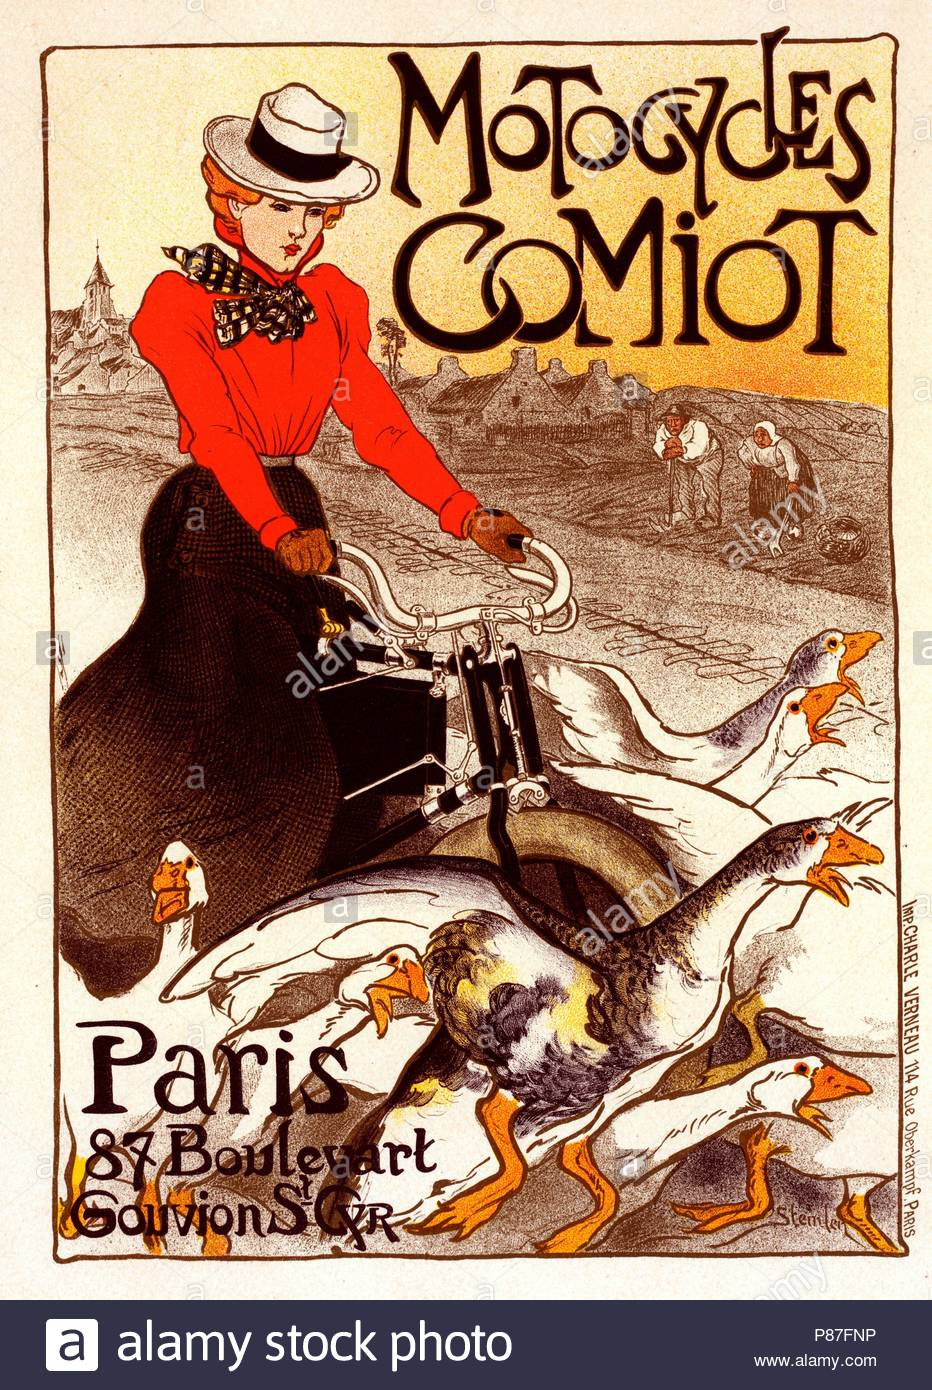 Poster for Motocycles Comiot. Théophile Alexandre Steinlen, frequently referred to as just Steinlen 1859 – 1923, a Swiss-born French Art Nouveau painter and printmaker. - Stock Image